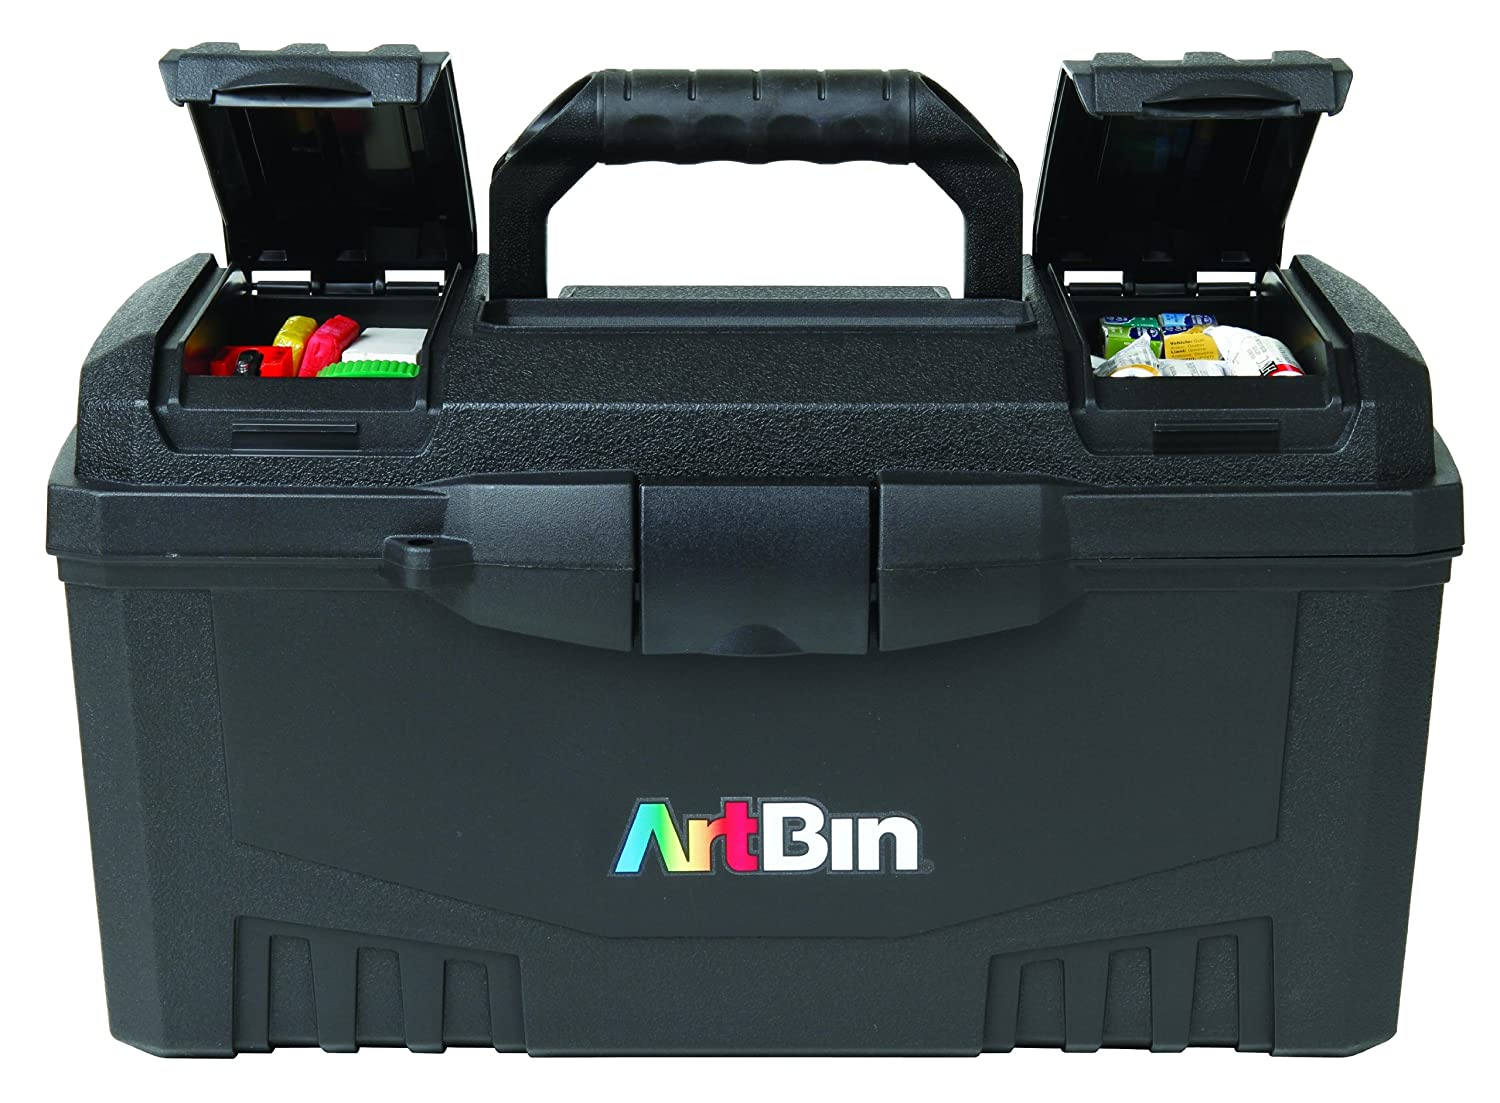 Other Home Arts & Crafts Black Art And Craft Supply Storage Container Special Buy Frank Artbin 17-inch Twin Top Tool Box